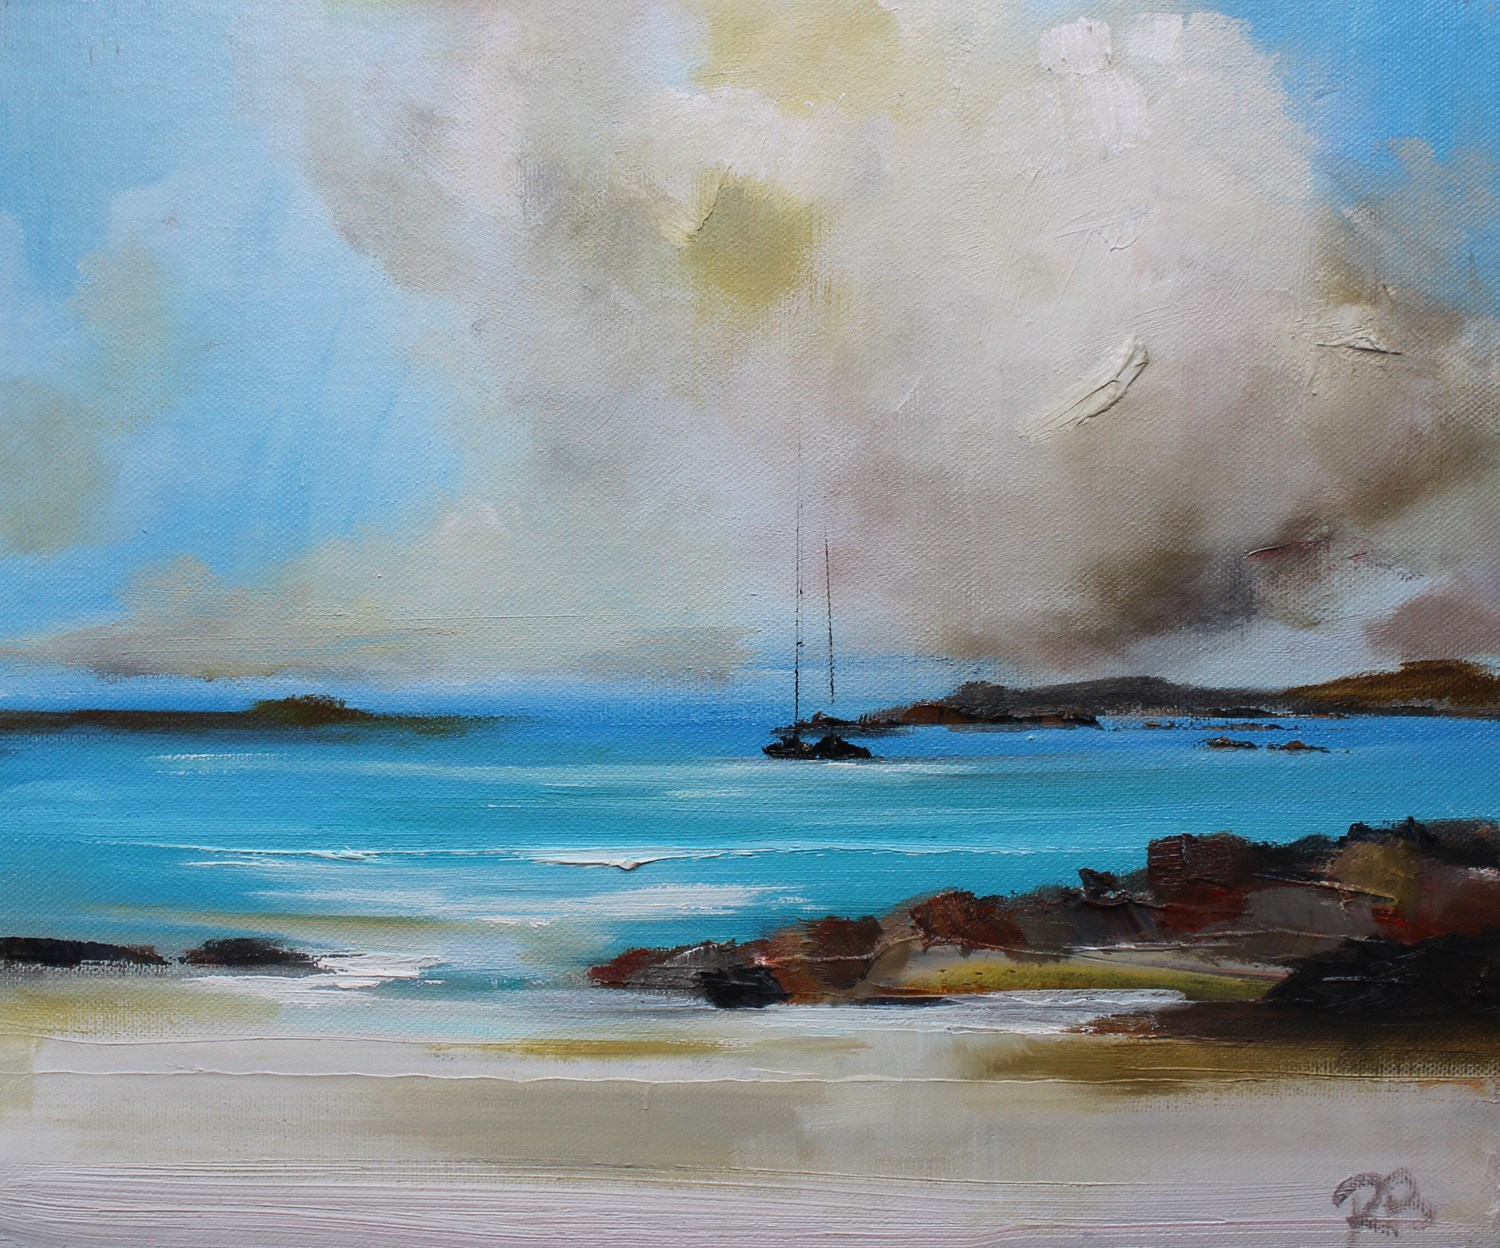 'A Billowing Cloud' by artist Rosanne Barr